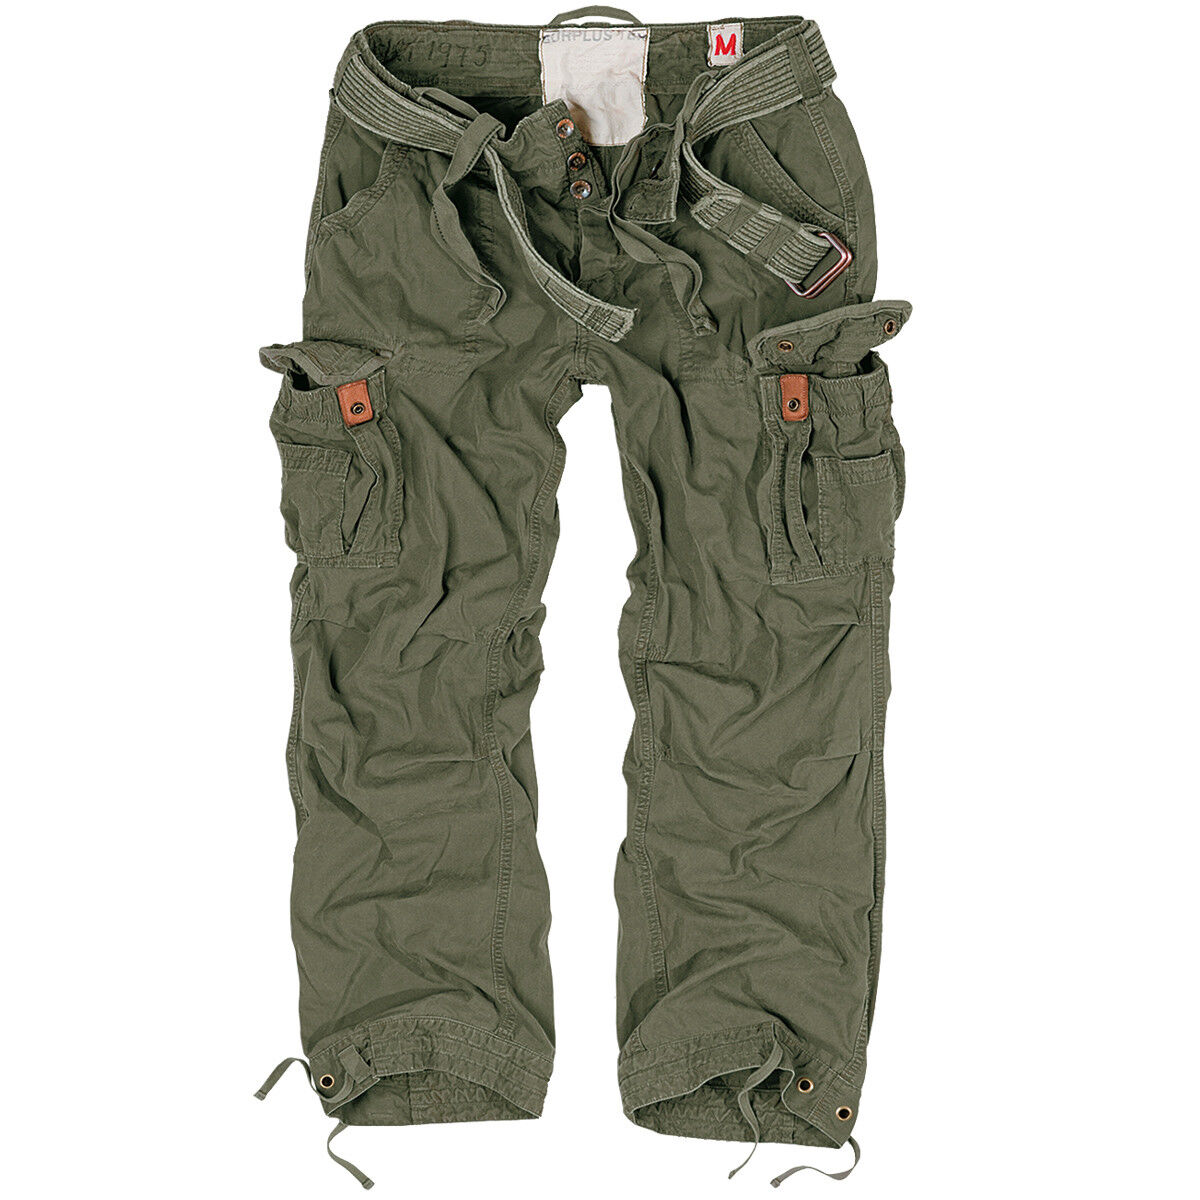 SURPLUS PREMIUM RAW VINTAGE TROUSERS MENS COMBATS WORK PANTS CASUAL CARGOS OLIVE